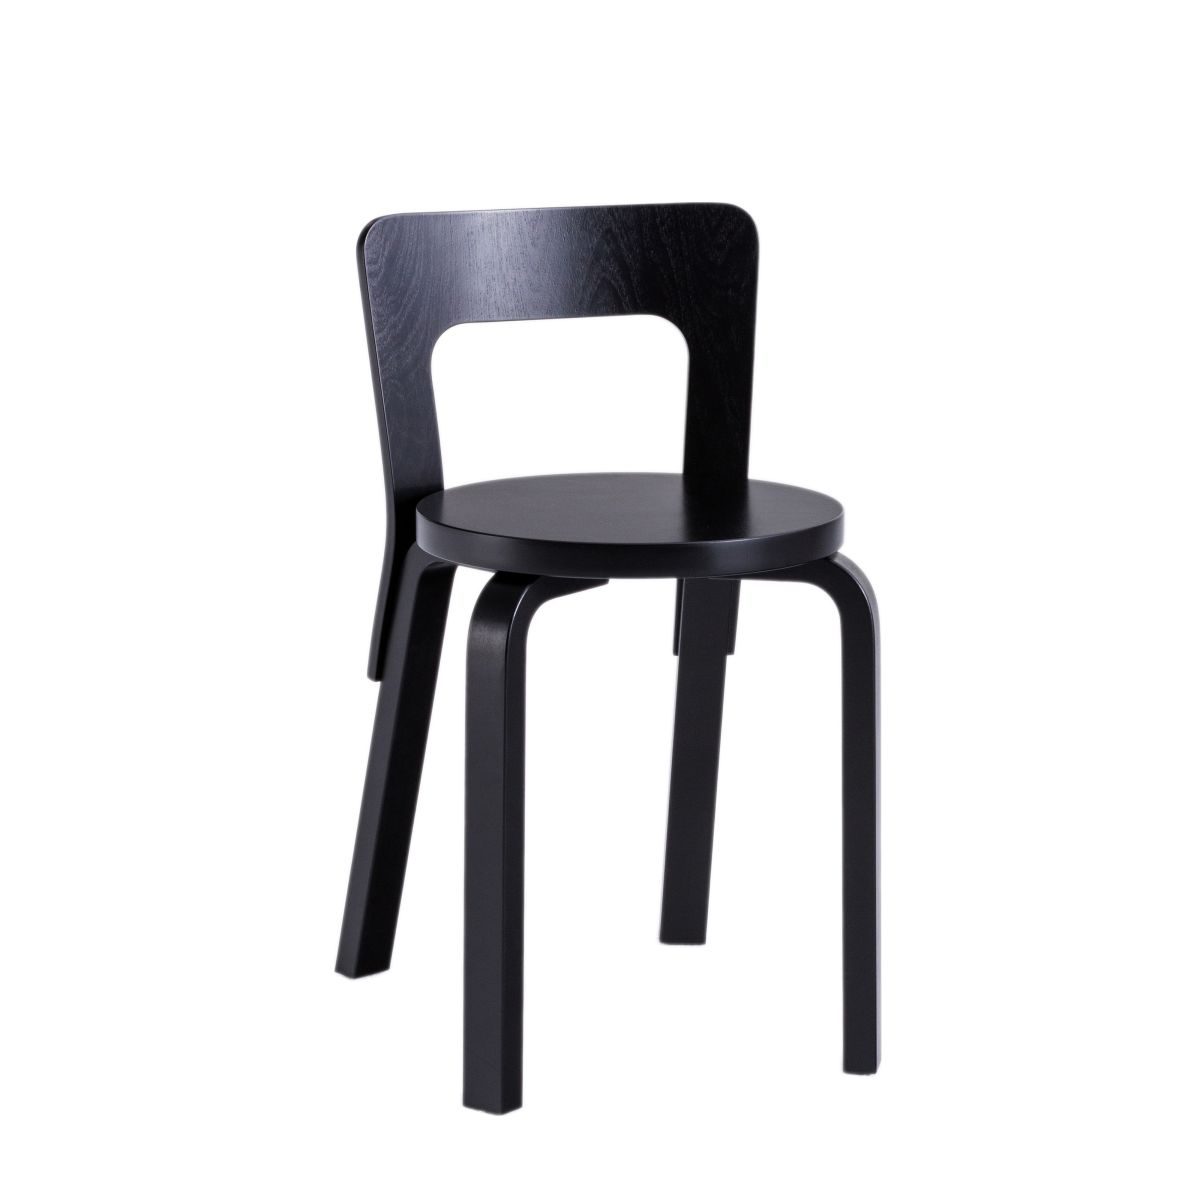 Chair 65 black lacquer